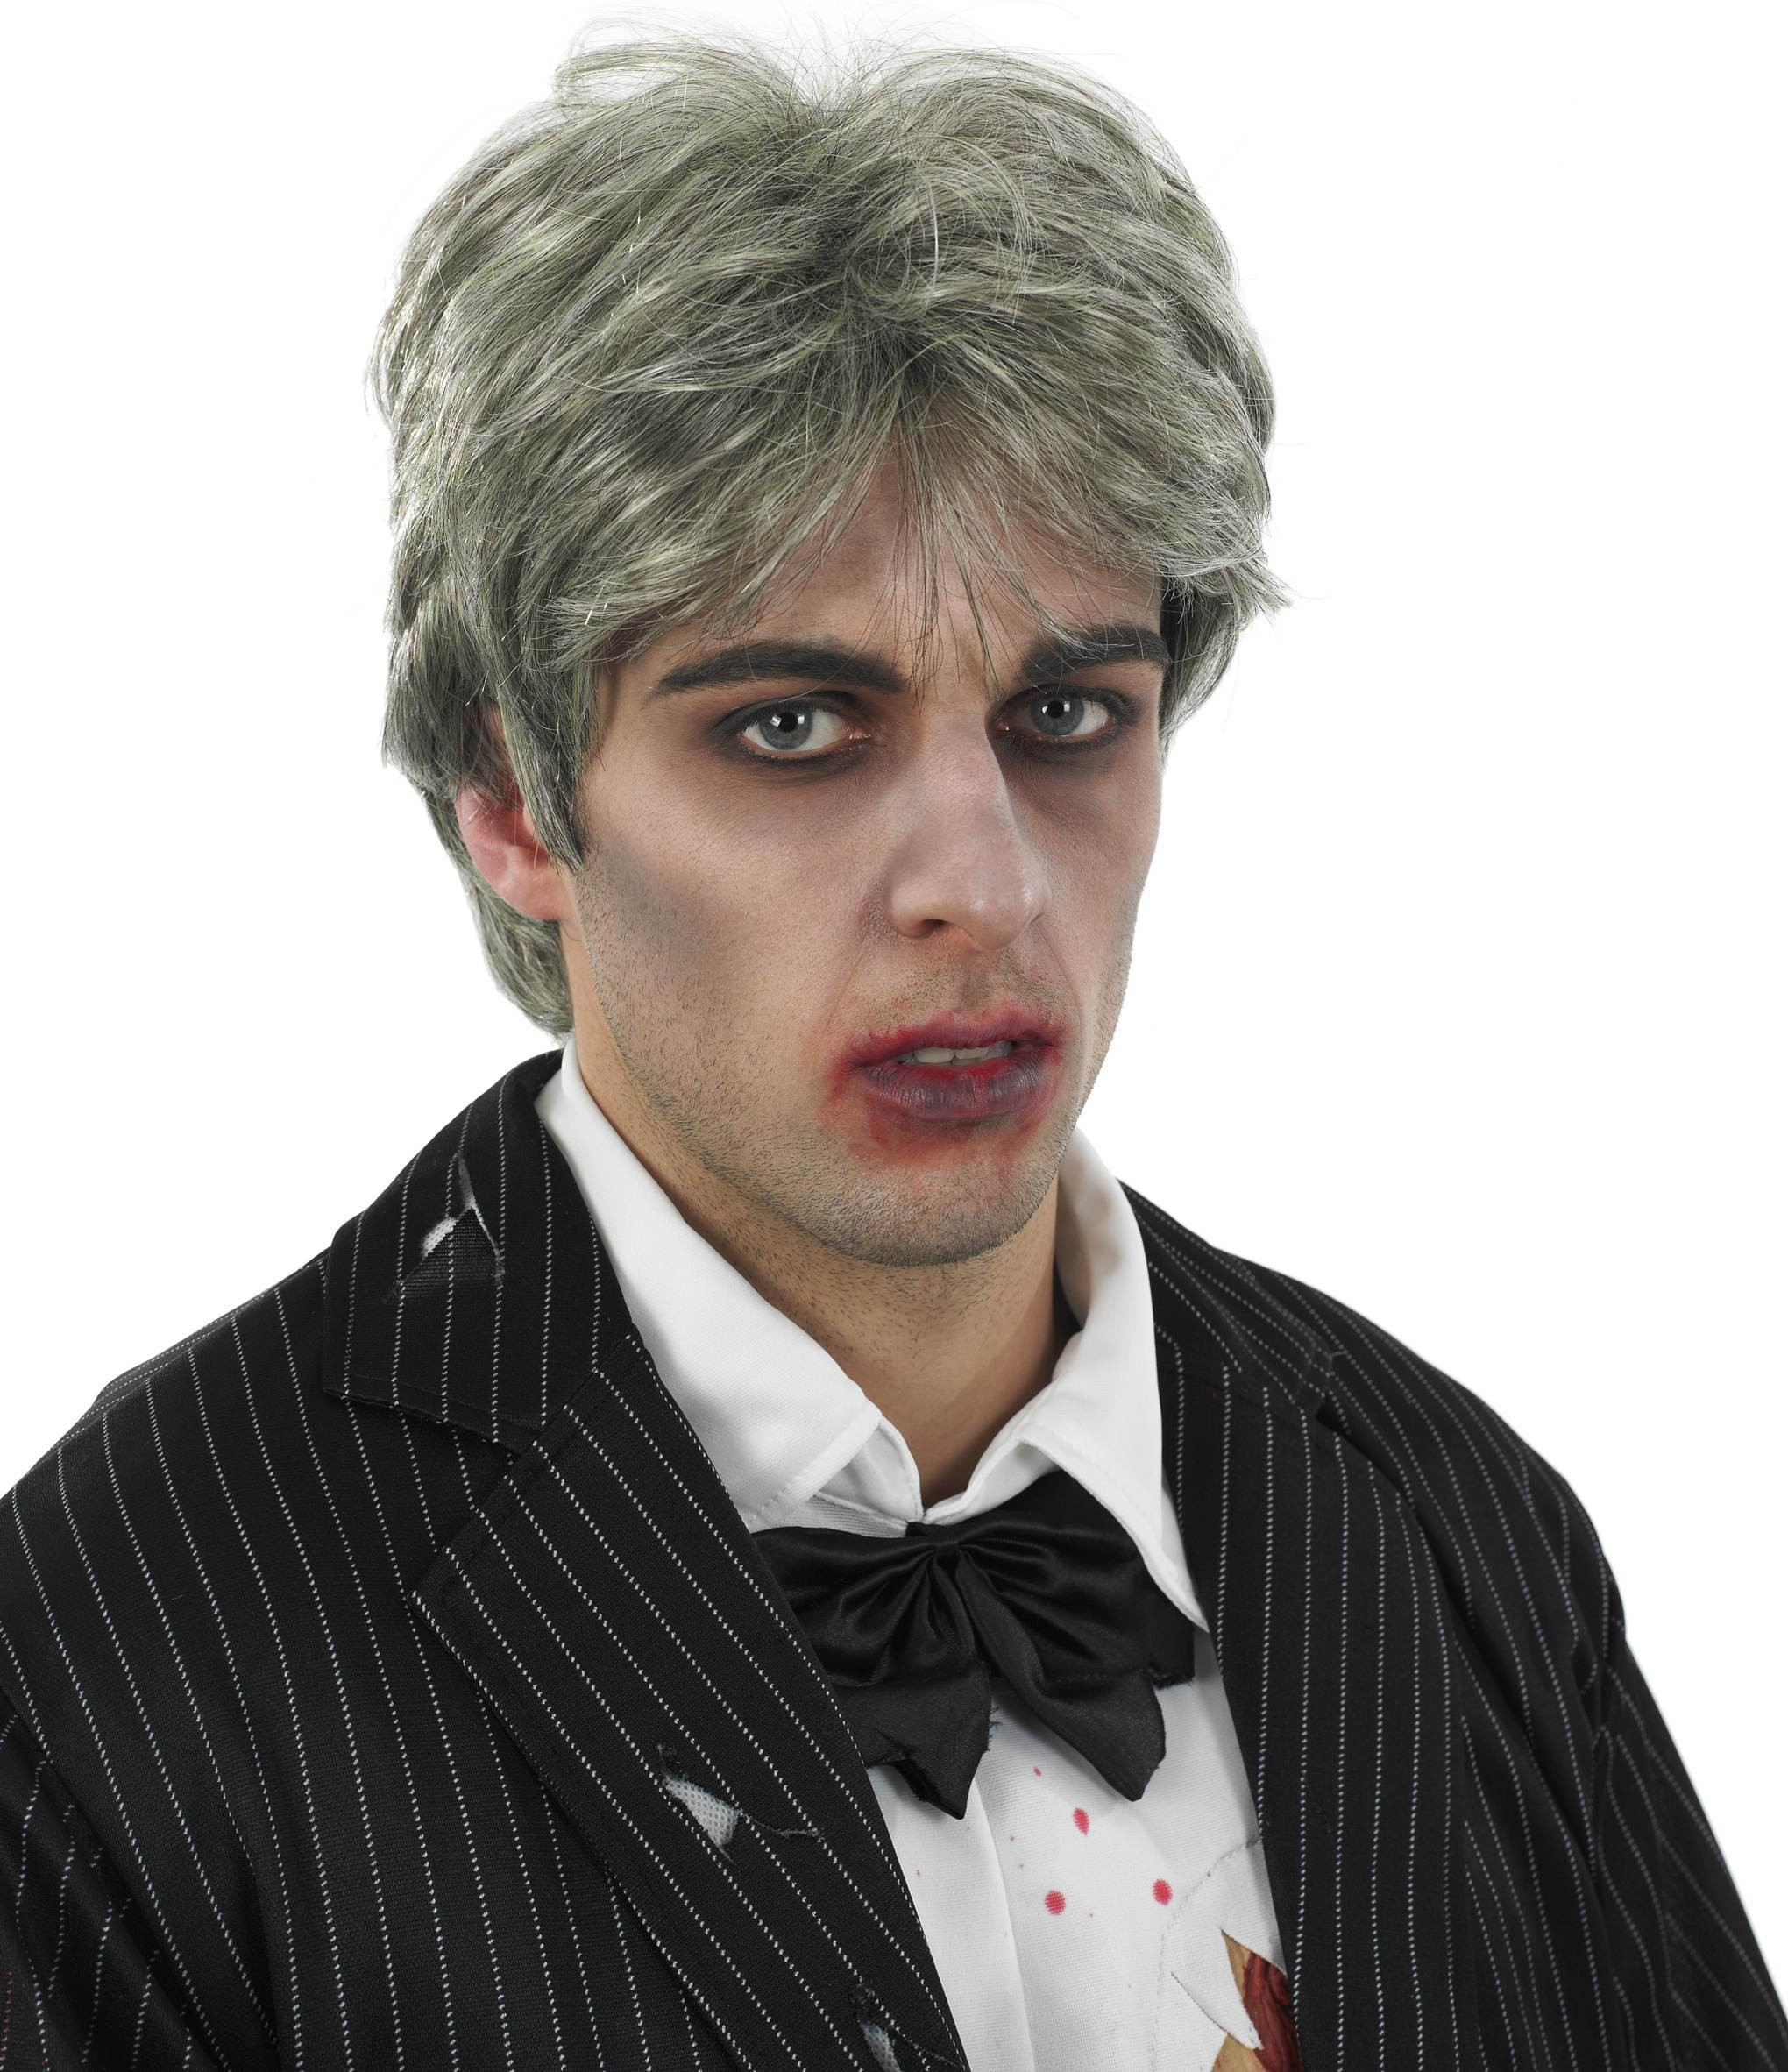 Mens Grey (Male Zombie Wig)Fancy Dress Costume